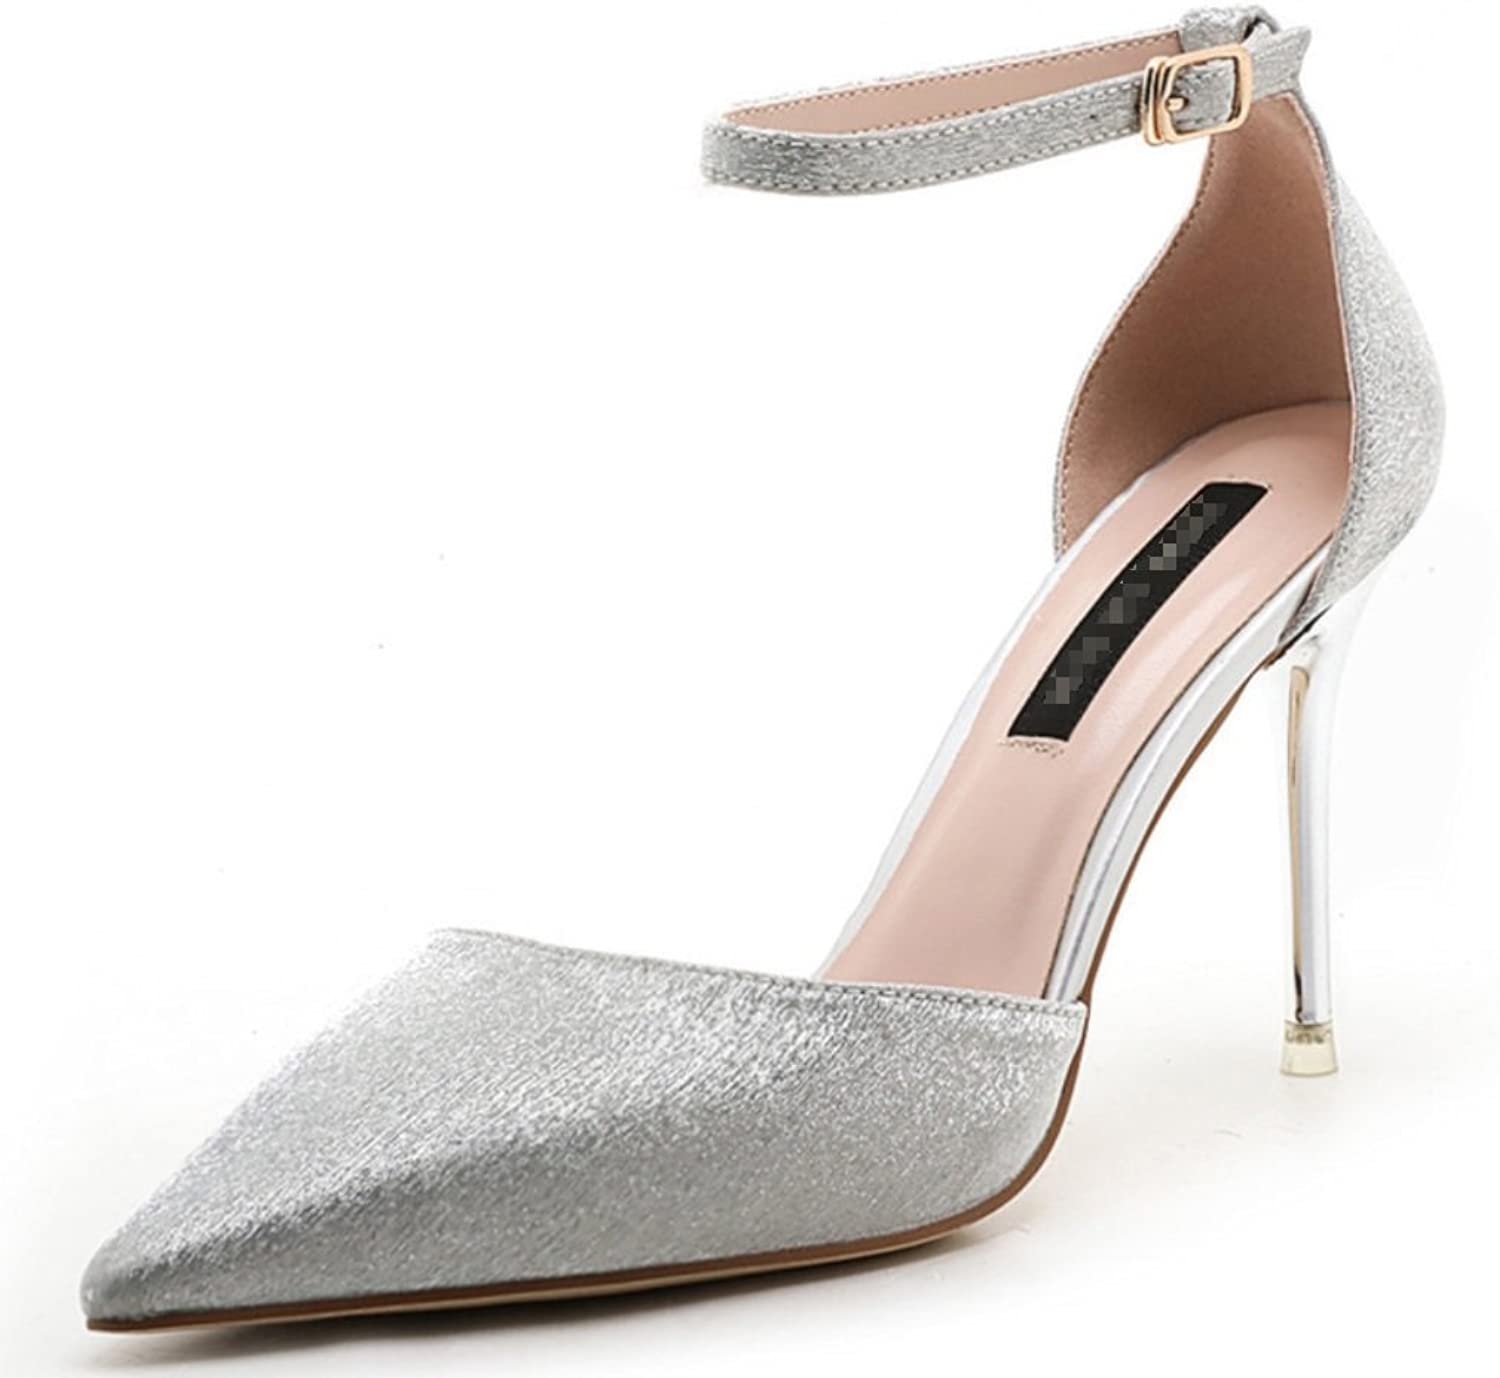 Ladies Super High Heels-Sexy Pointy Sandals-Solid color Sequins One-Word Buckle shoes Formal, Wedding, Party Comfort Classic Series Zhhzz